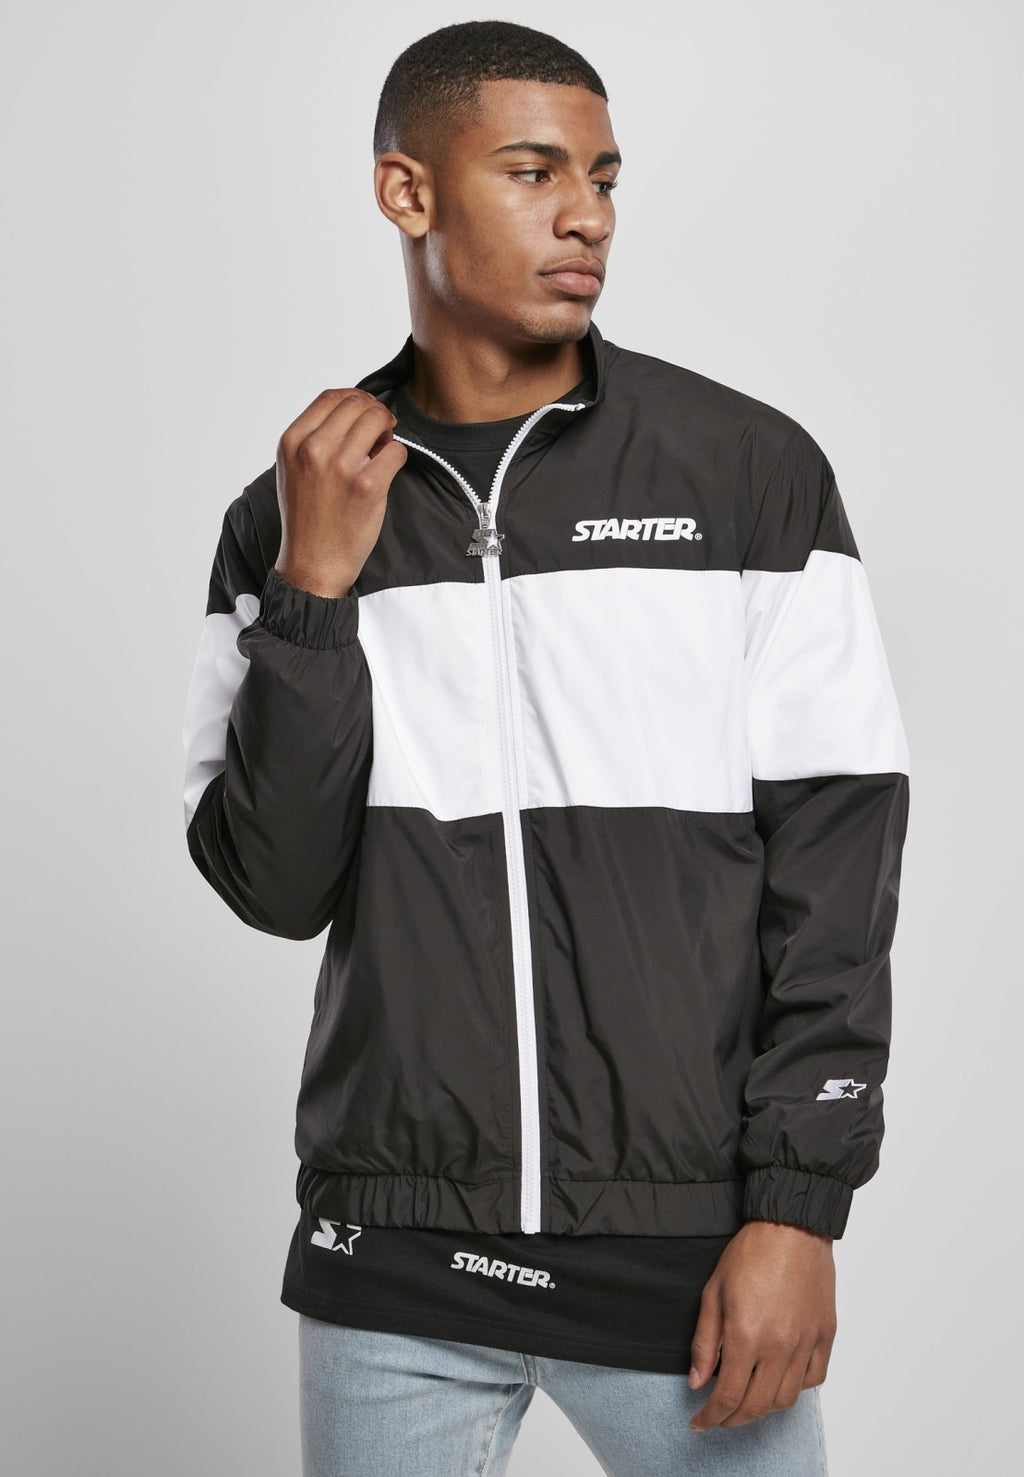 Starter Block Jacket Jacket Light Starter